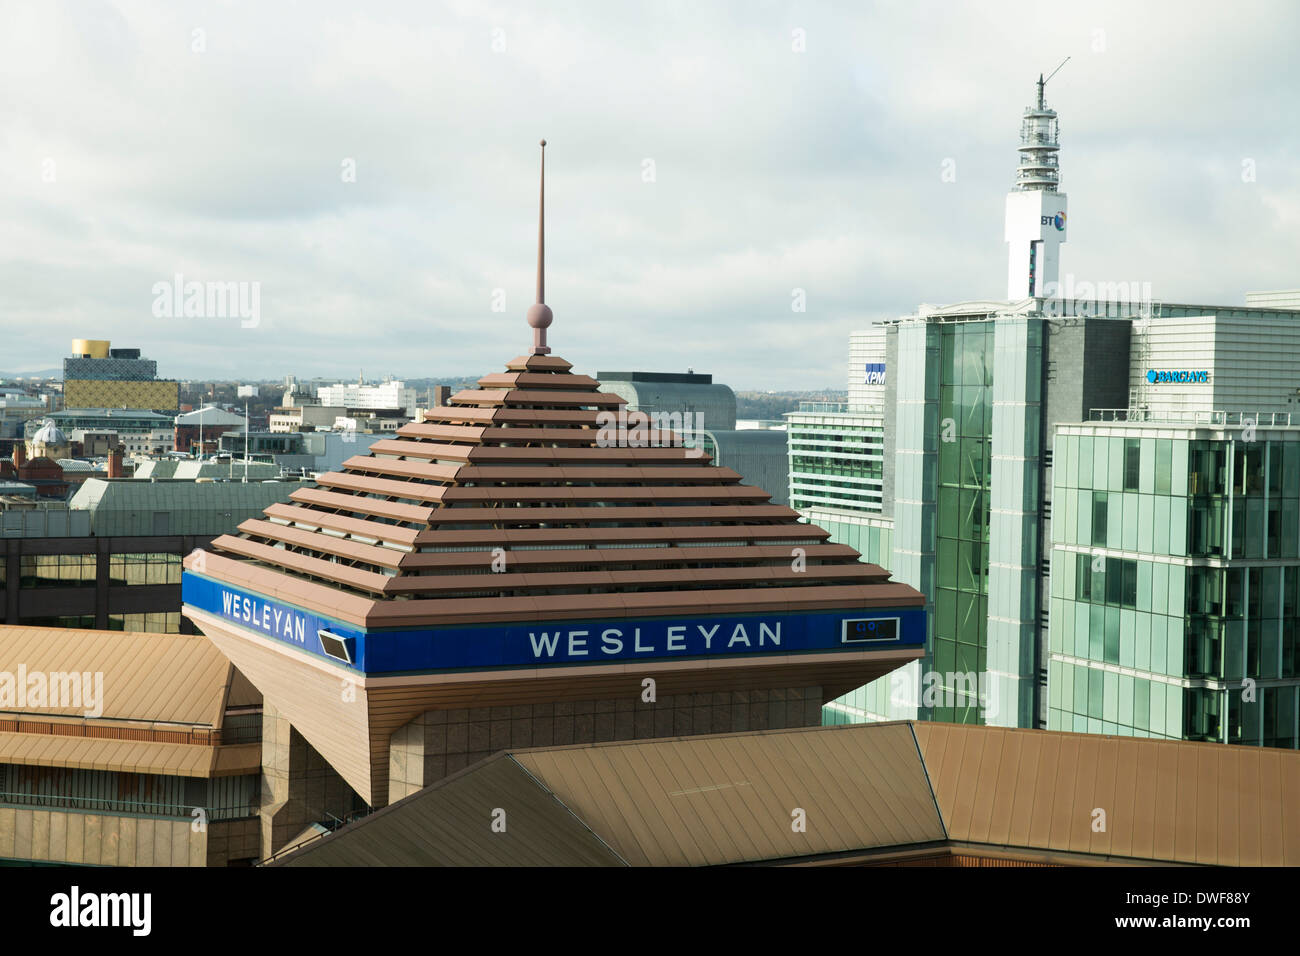 A view across the rooftops of Birmingham. Showing the Wesleyan building. - Stock Image